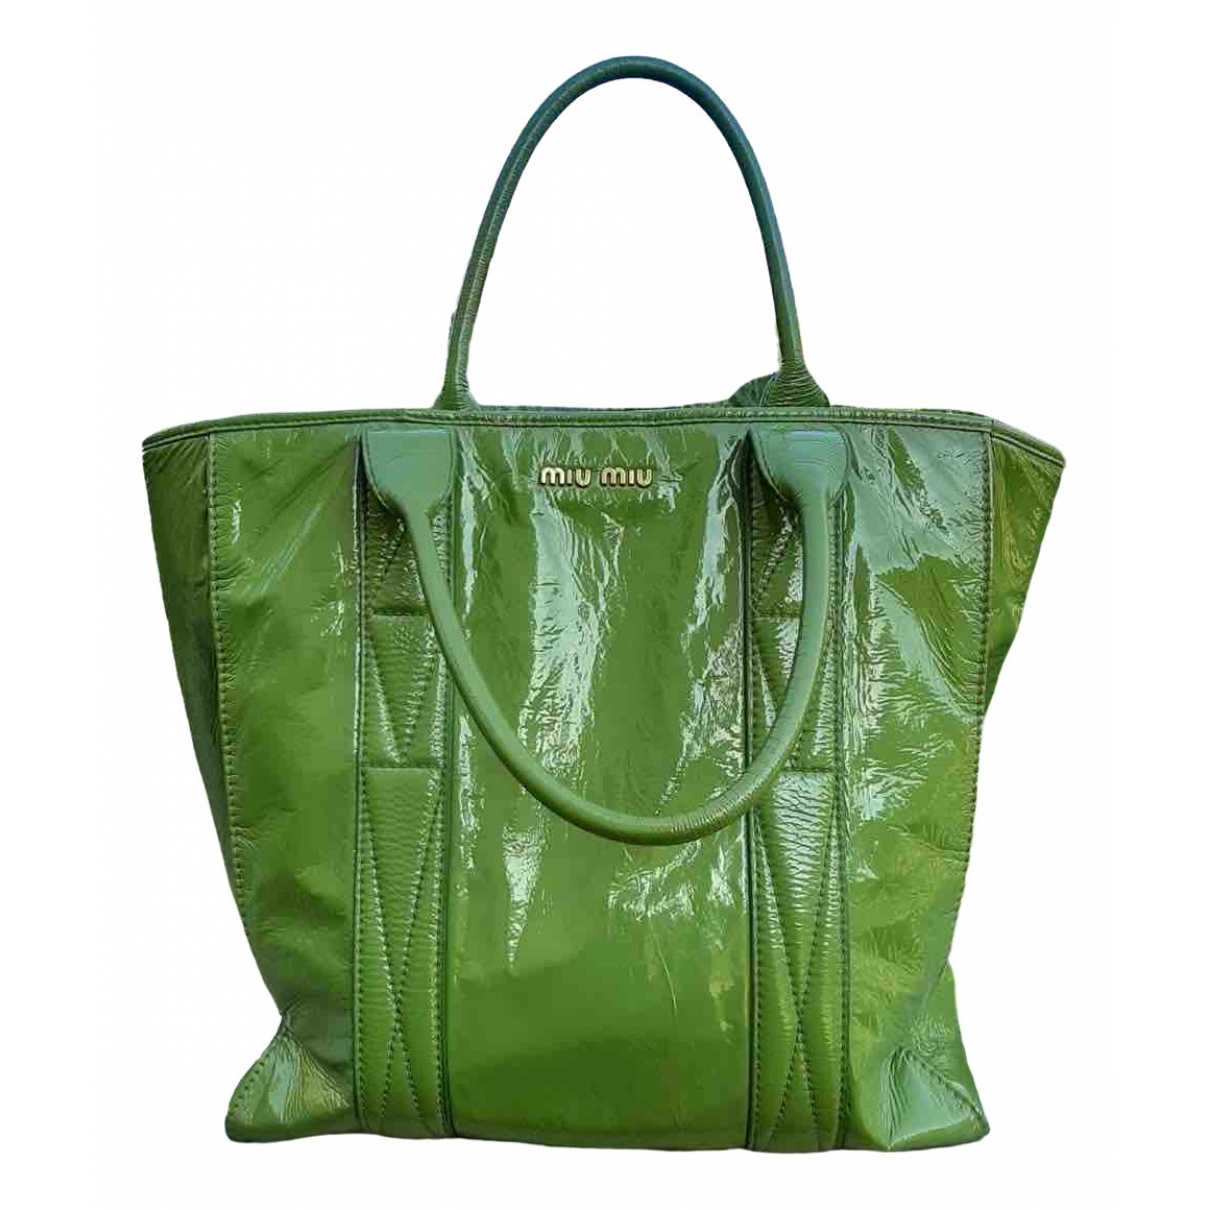 Miu Miu \N Green Patent leather handbag for Women \N